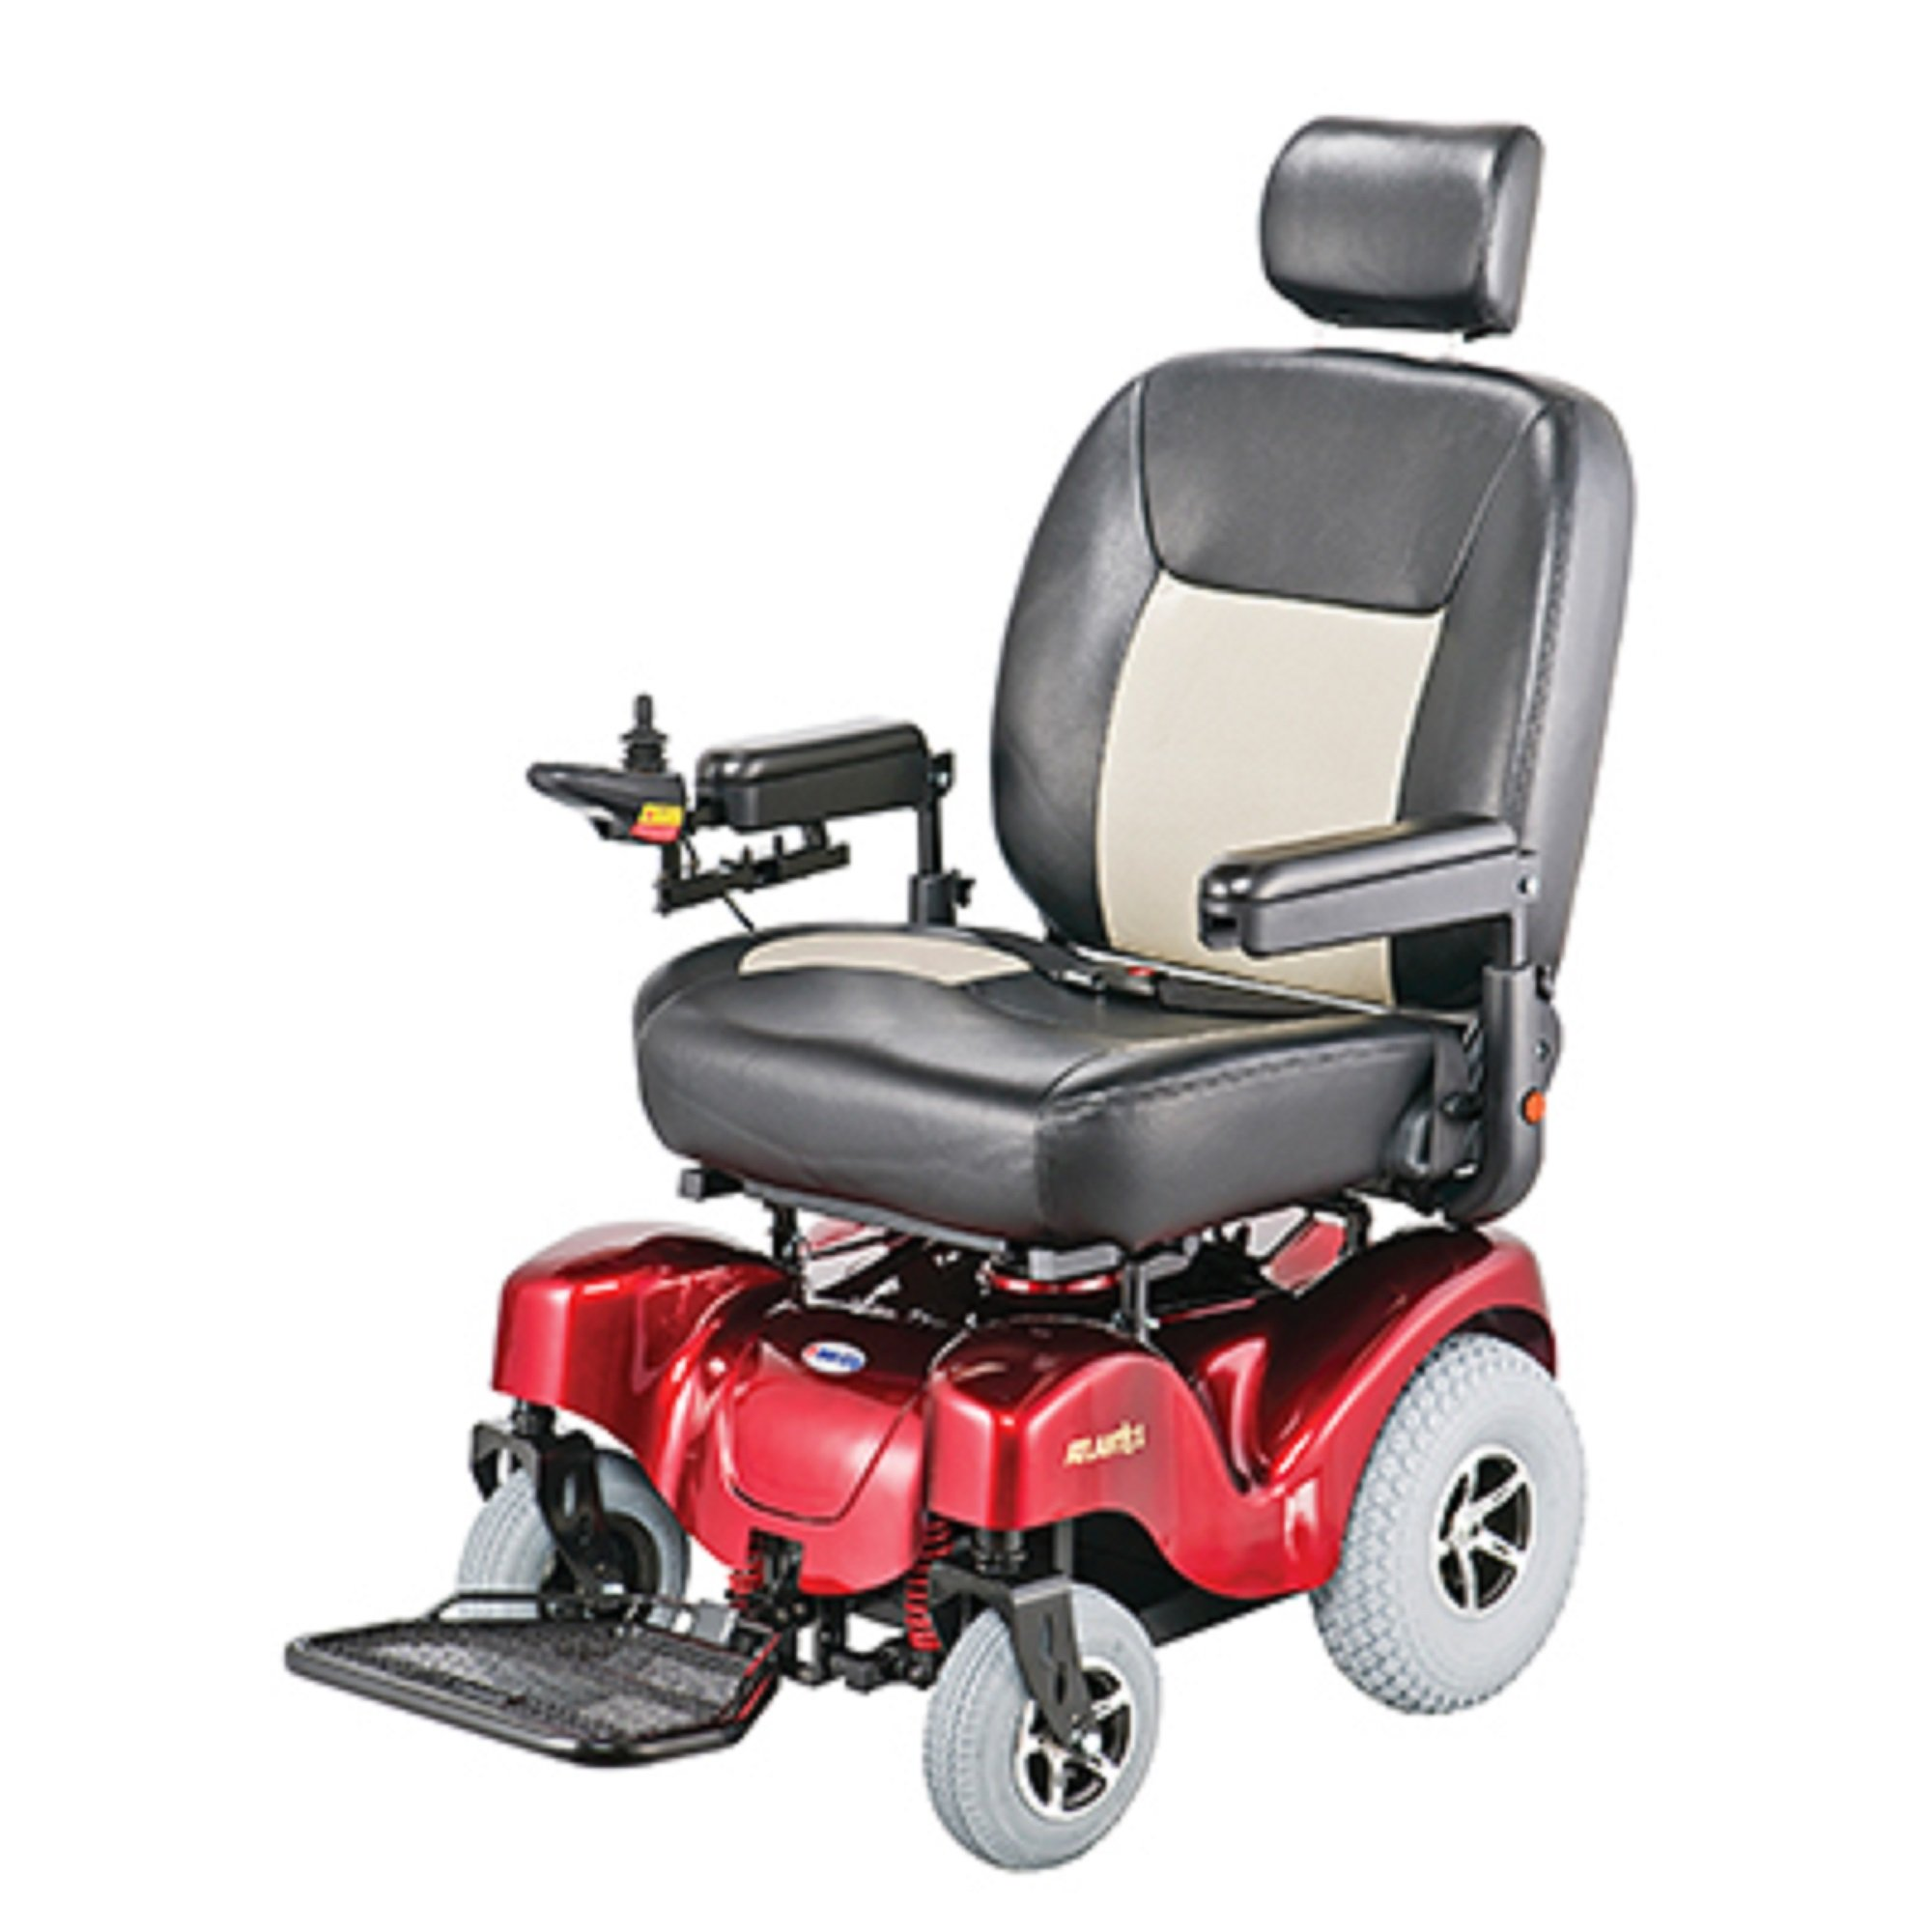 Merits Health Products - Atlantis - Bariatric Power Chair - 24''W x 20''D - Red